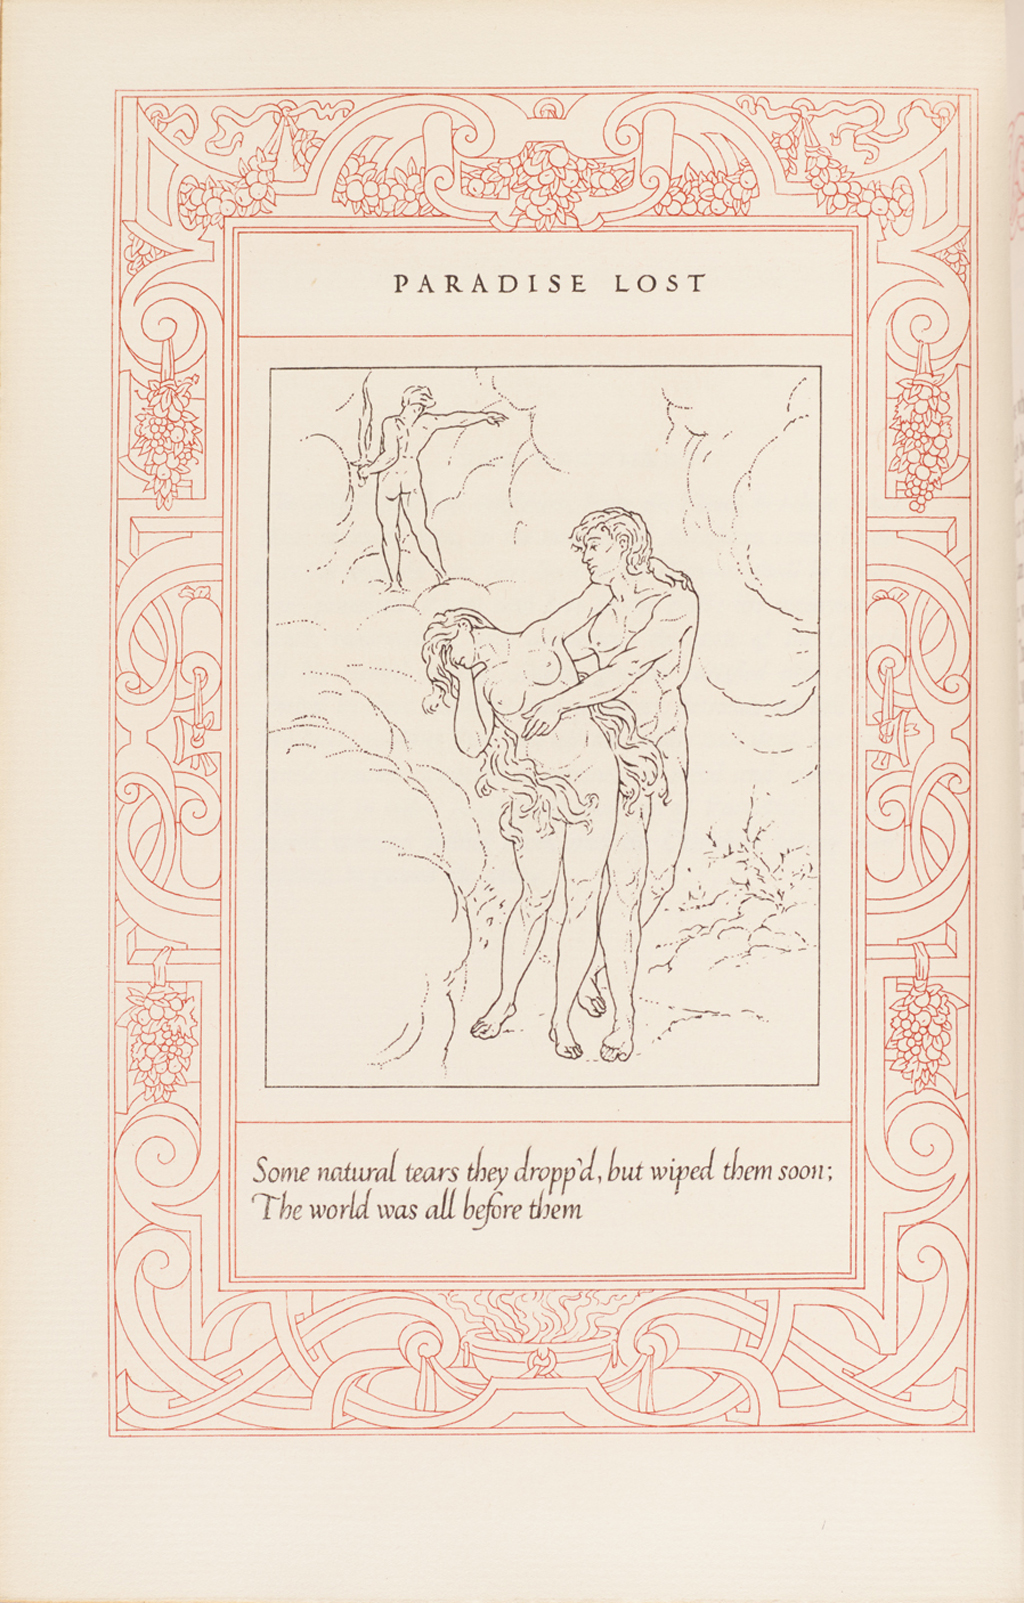 """Paradise Lost."" Illustration by W.A. Dwiggins from The Poetical Works of John Milton (Boston: R.H. Hinkley Company, 1908)."